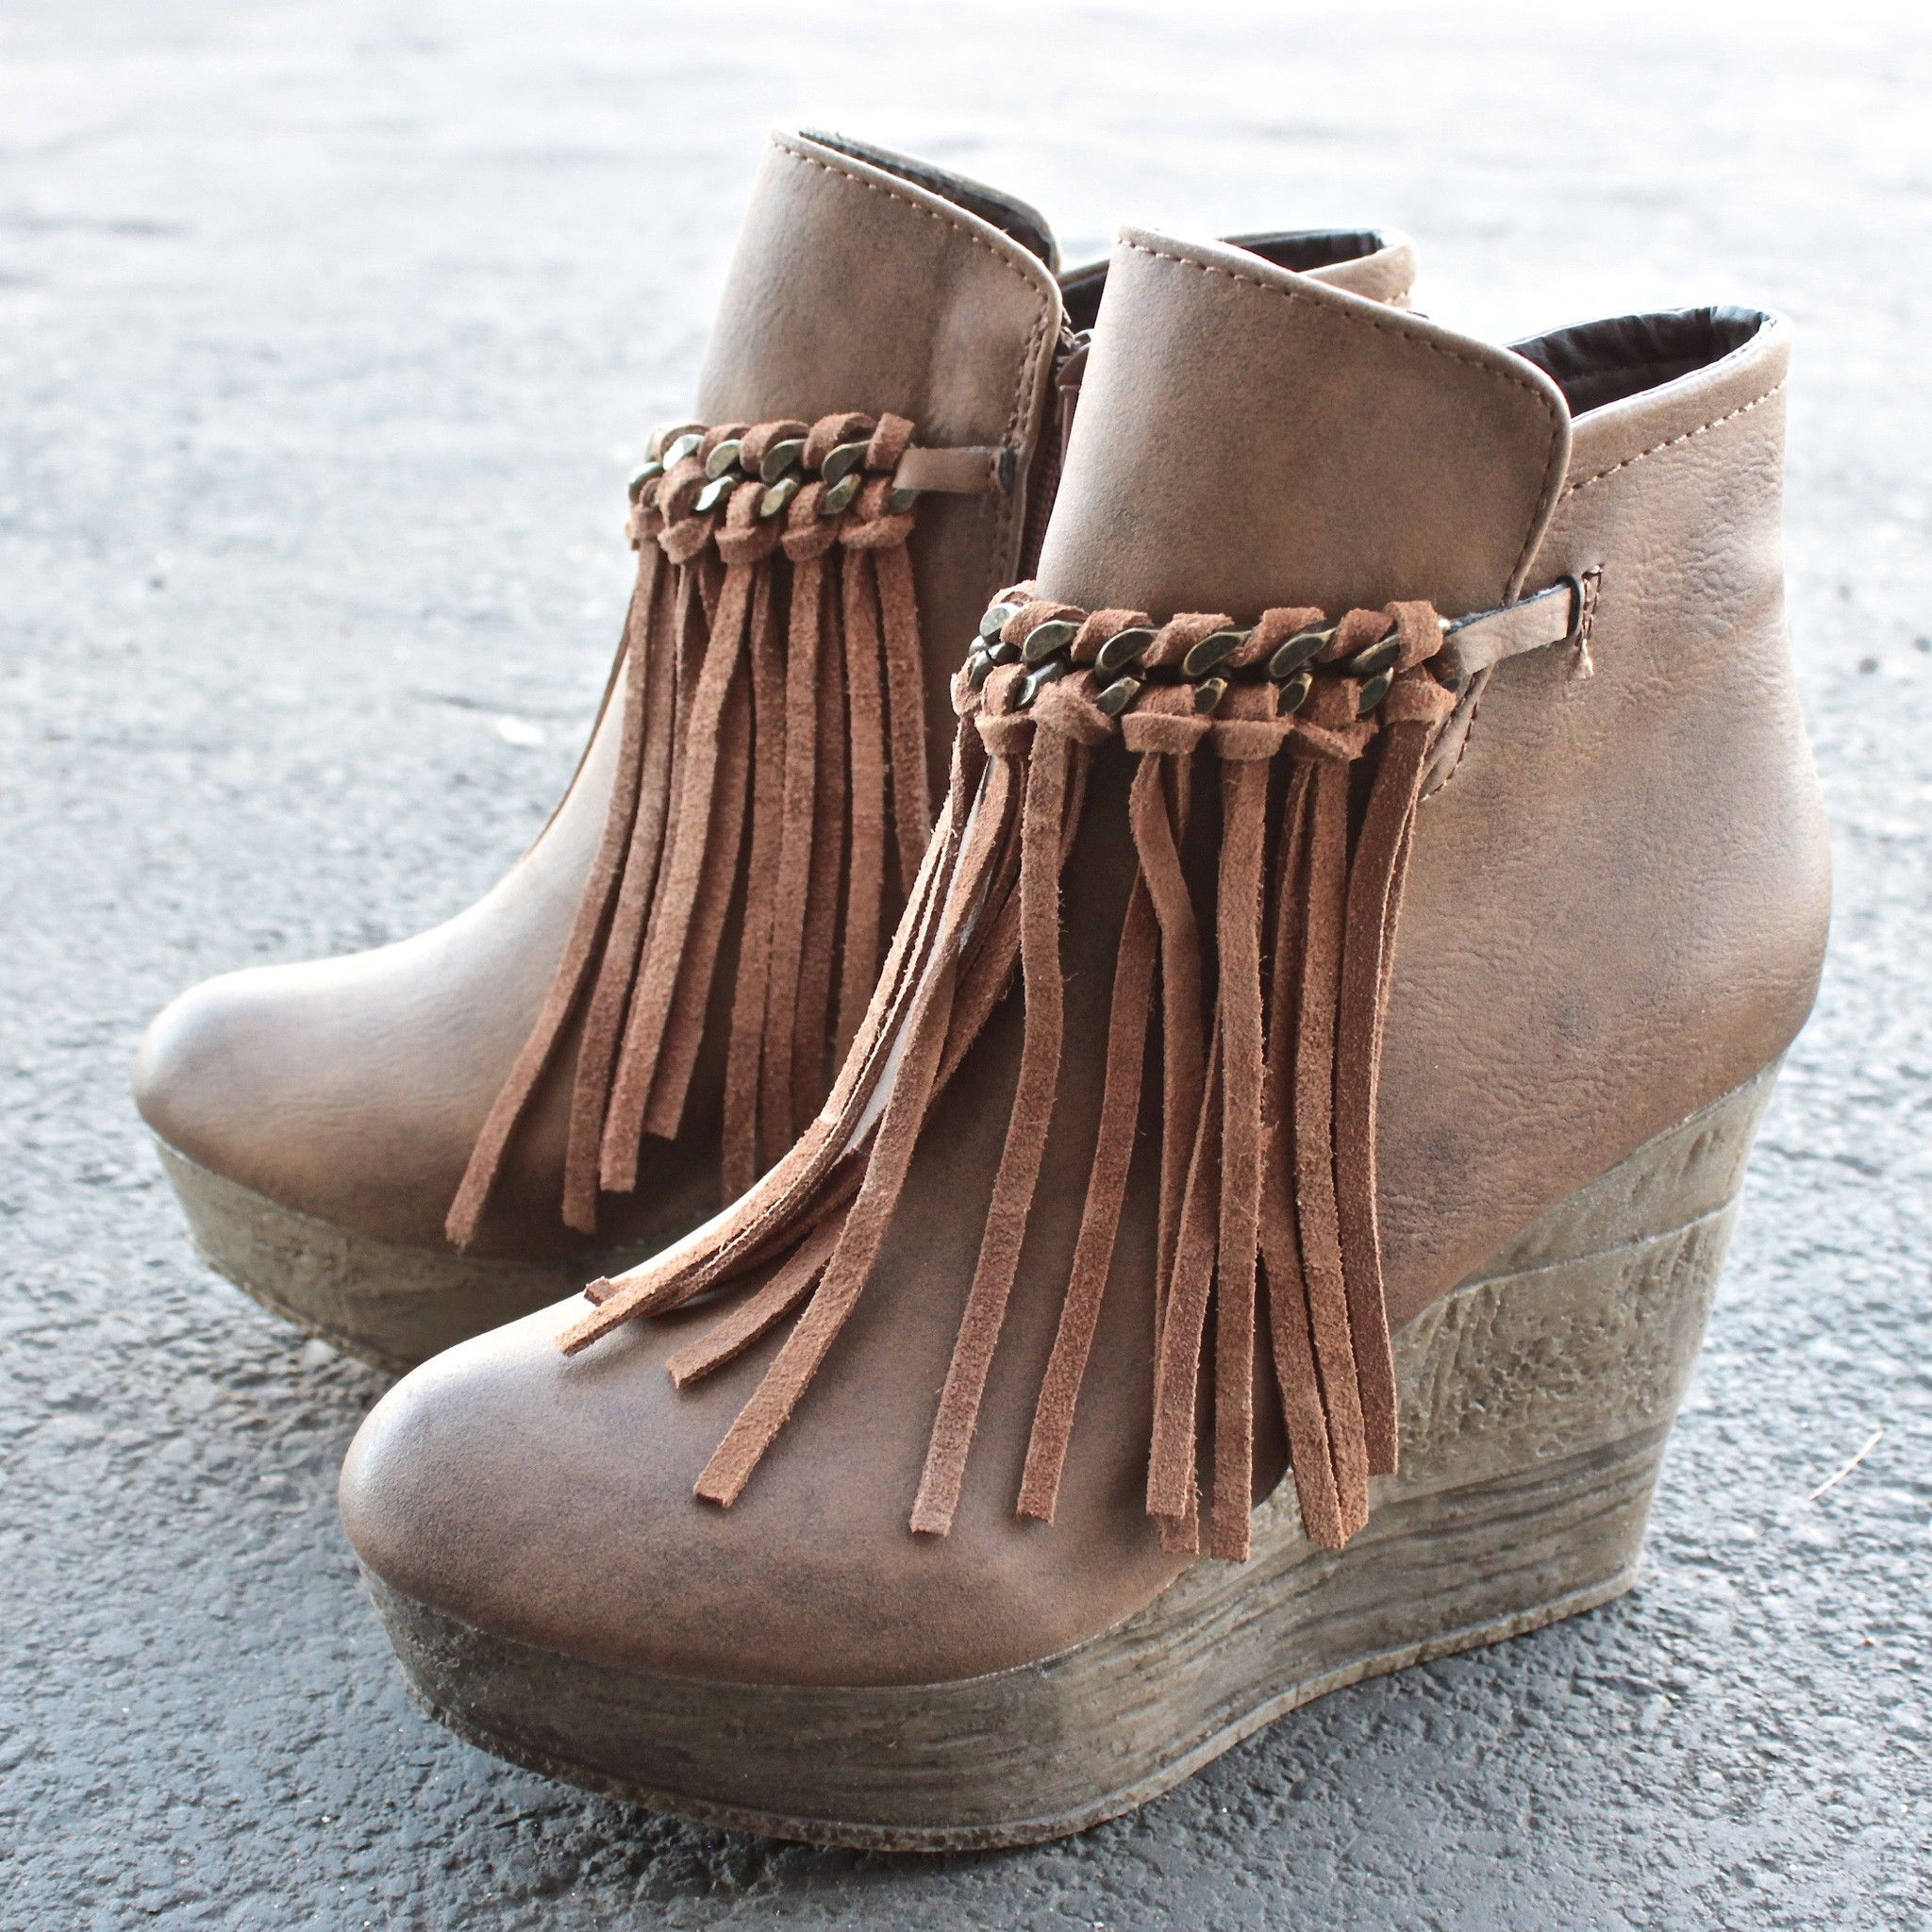 sbicca vintage collection - zepp wedge fringe ankle bootie - more colors